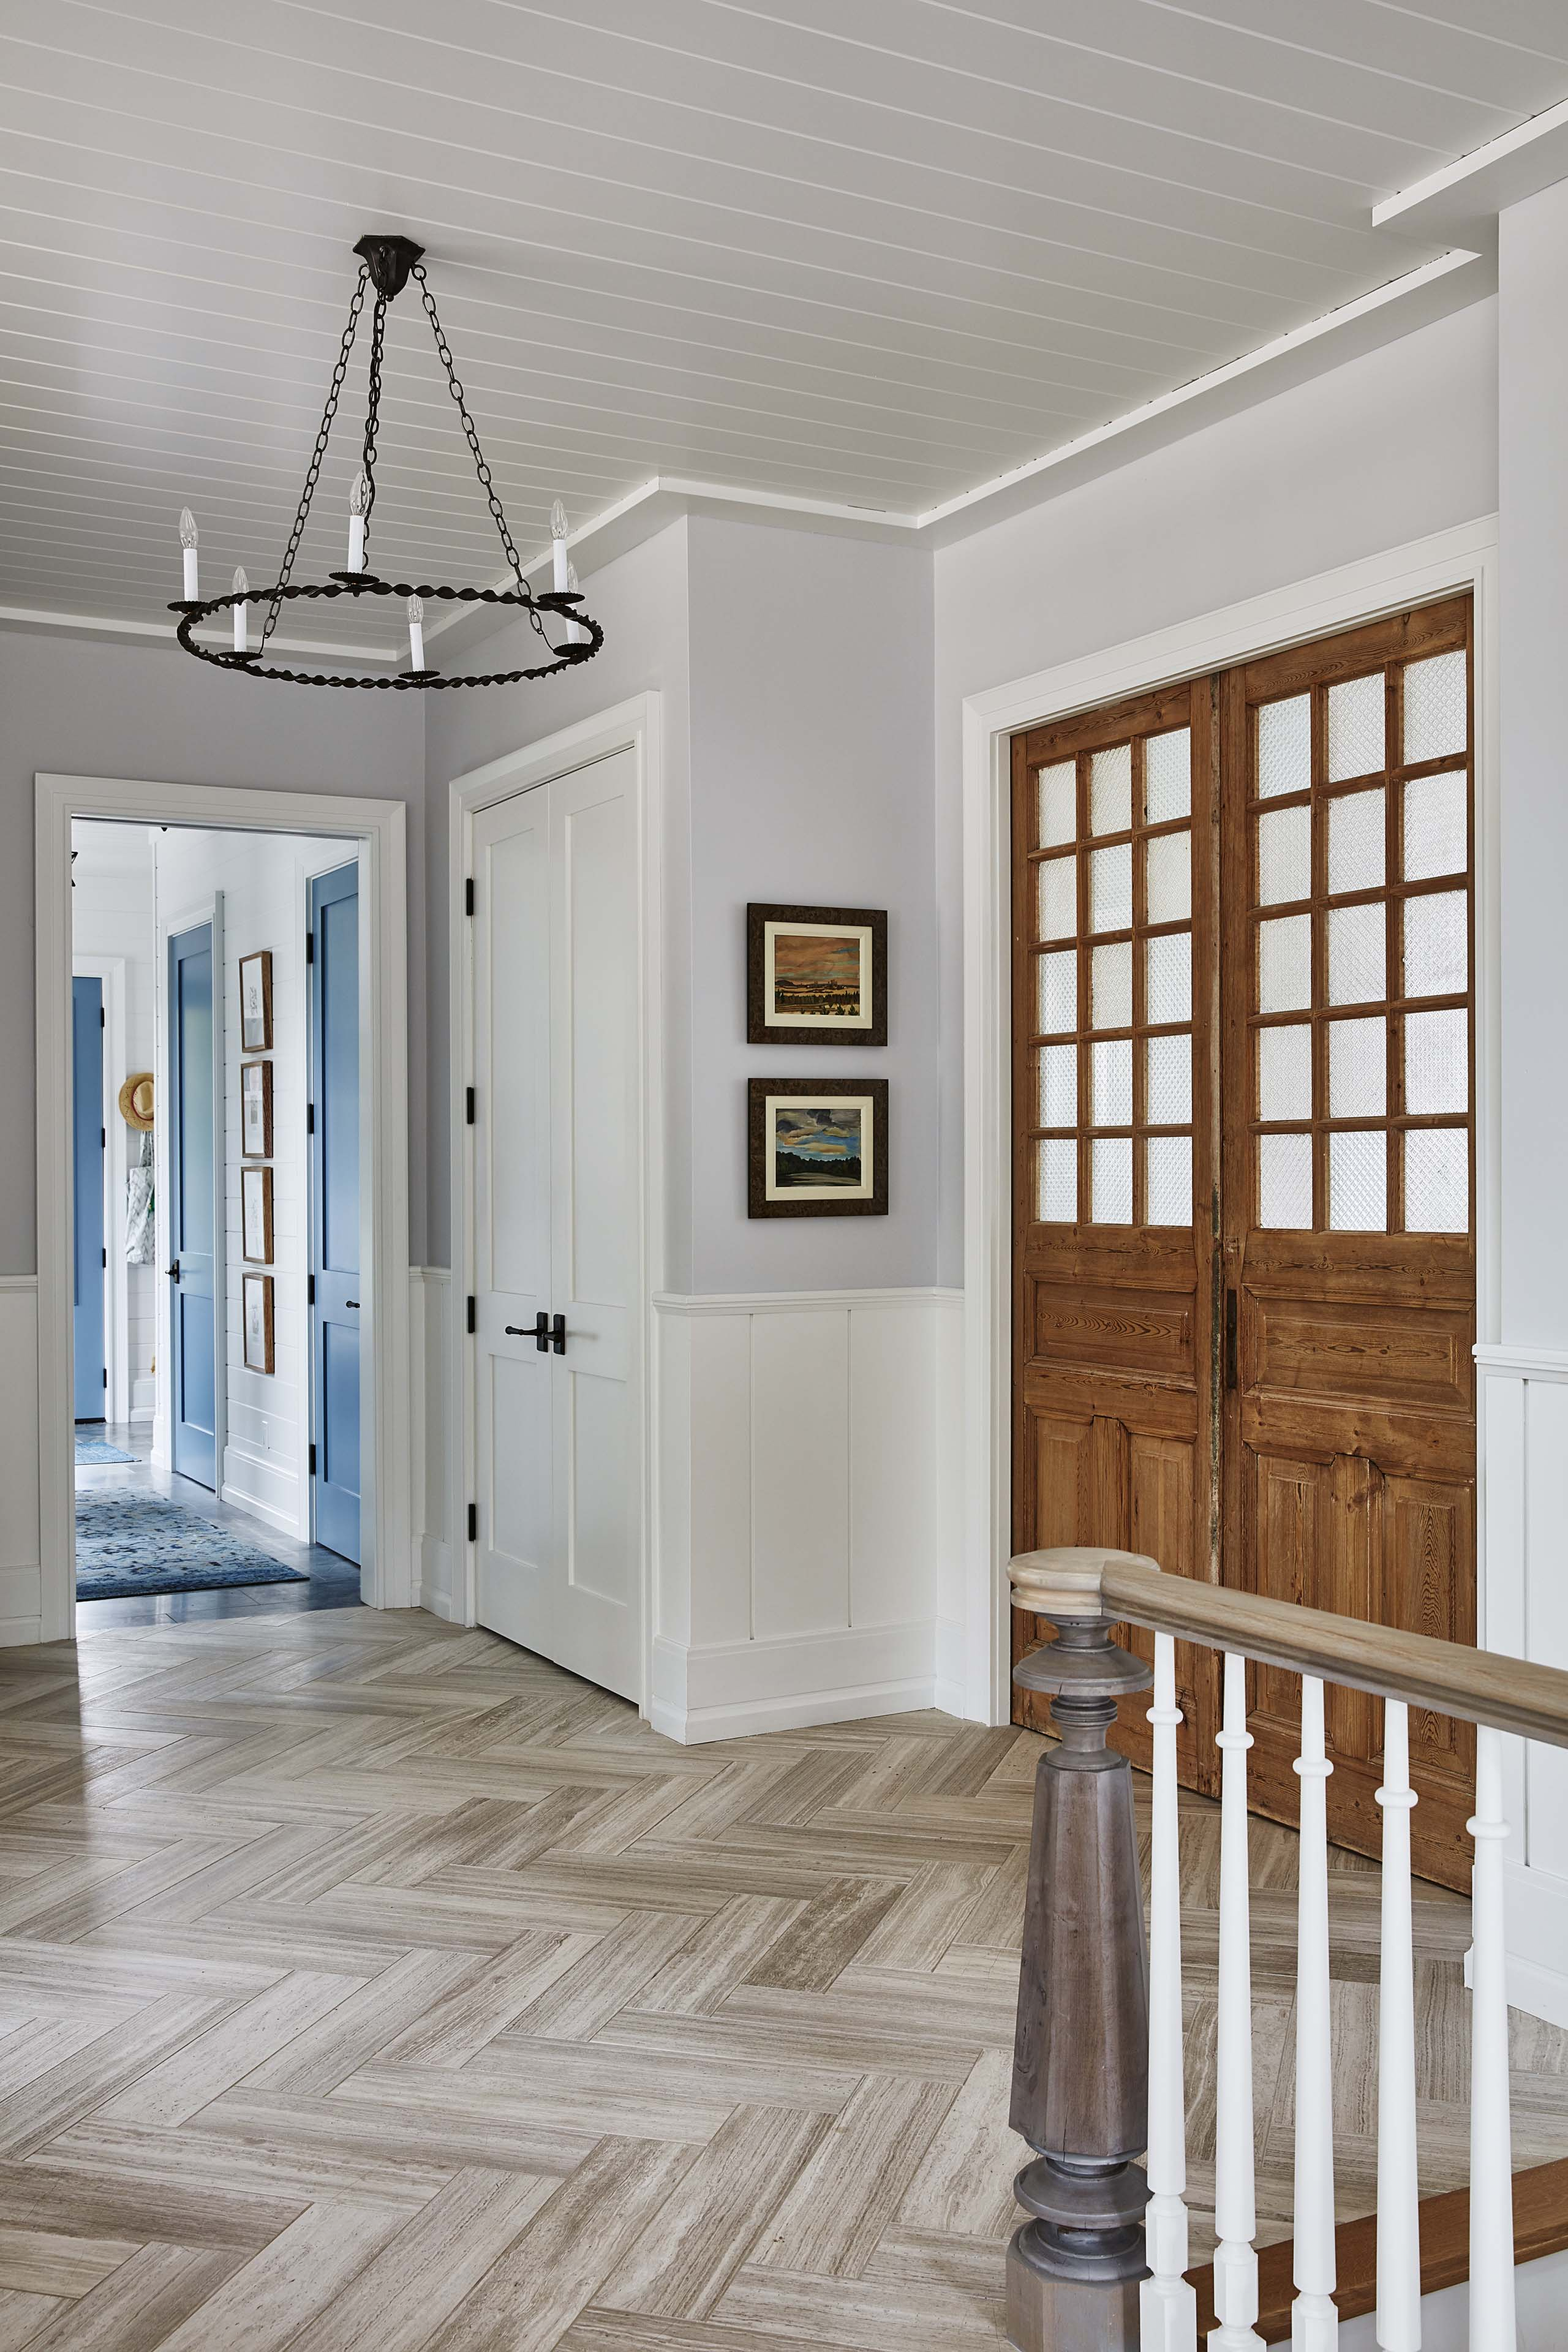 Beautiful frosted french doors in a modern farmhouse foyer. #bluedoor #Sarah Richardson #herringbonefloor